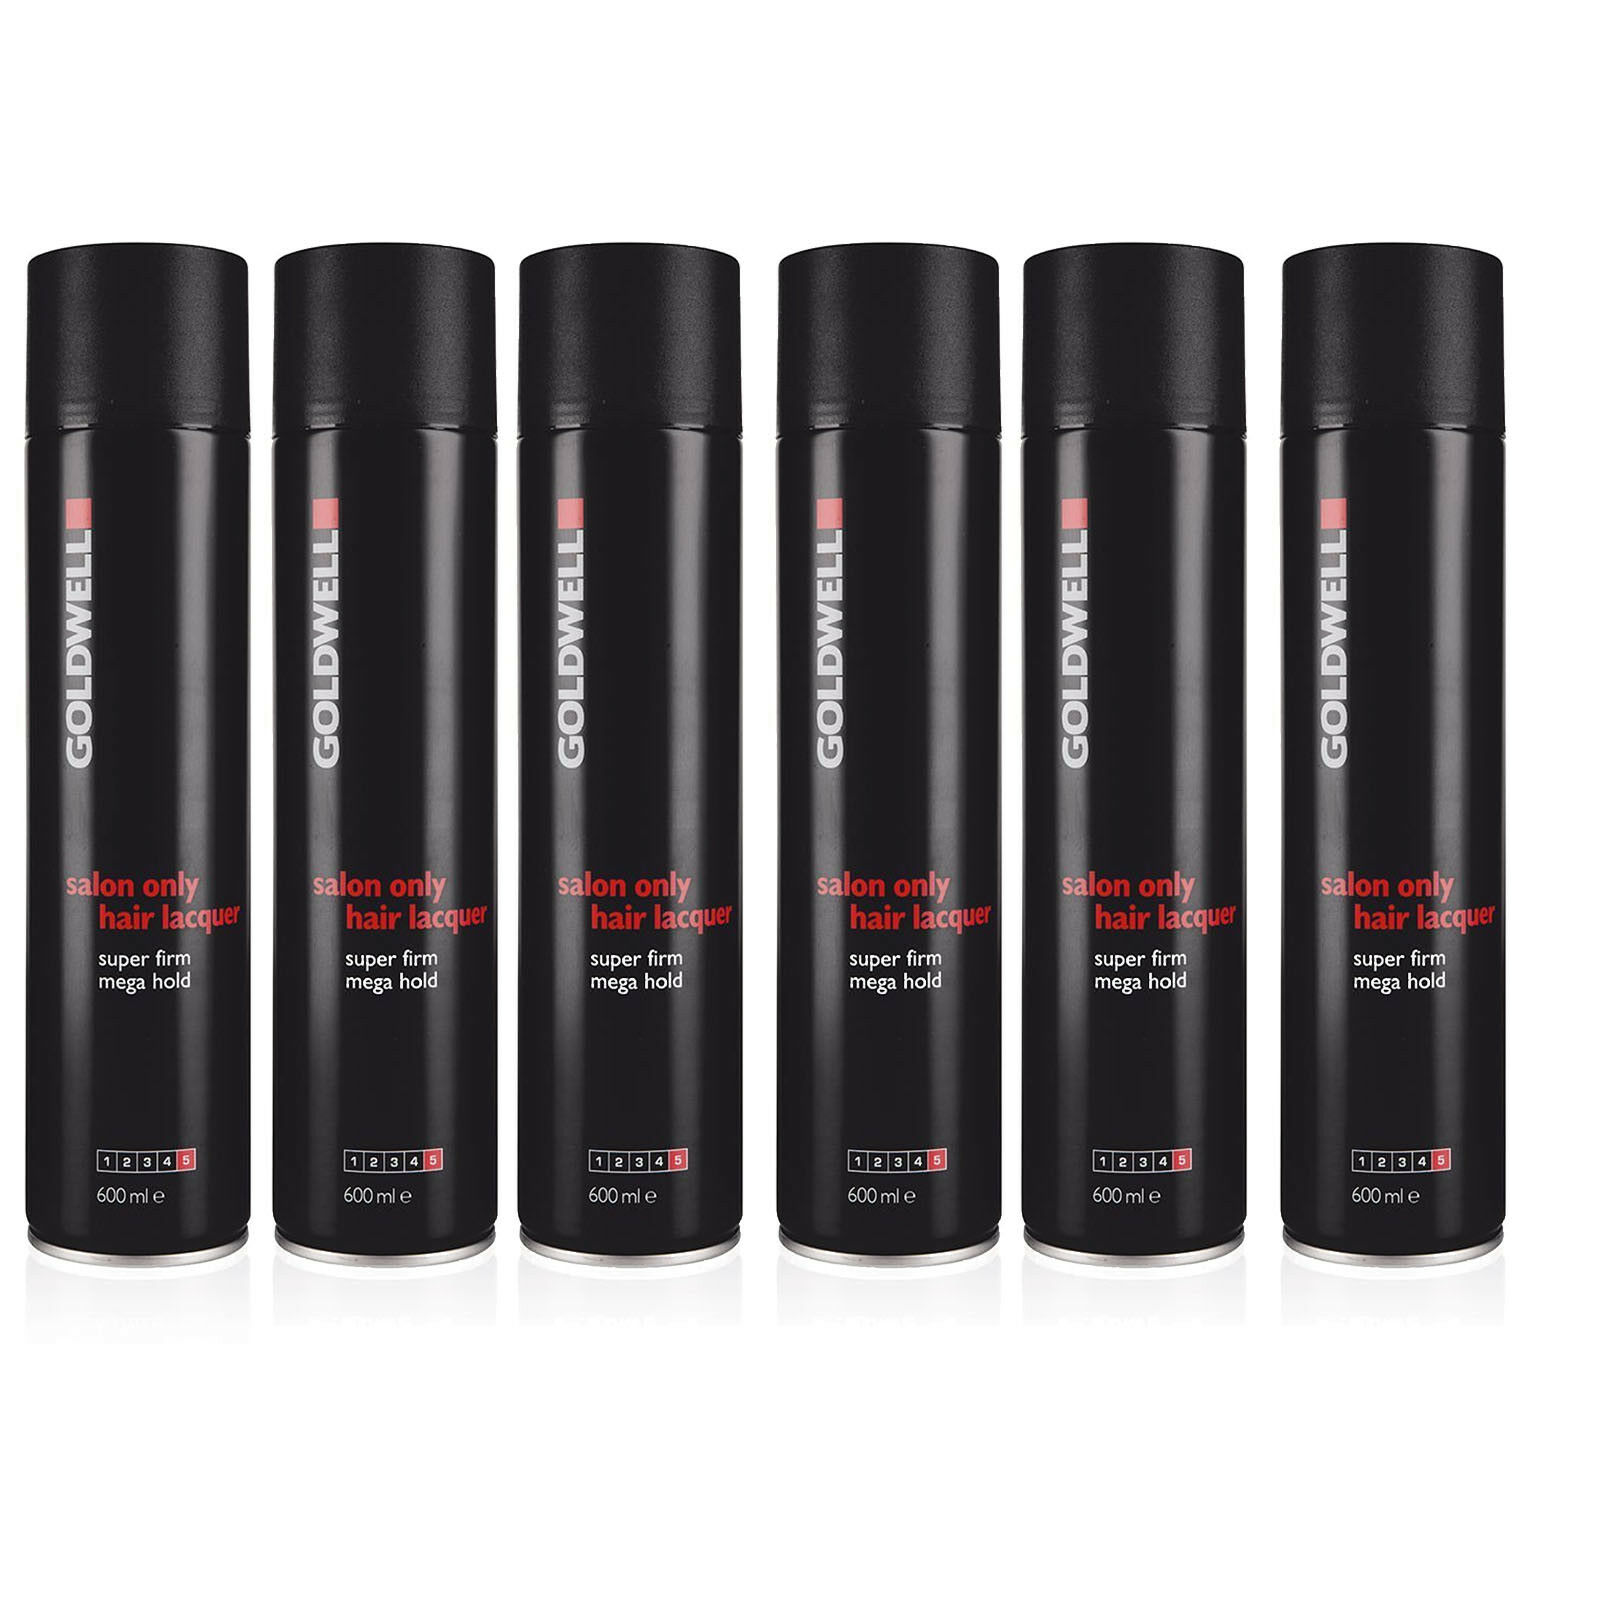 Goldwell salon only Haar Lack Haarspray stark hair lacquer super firm 6 x 600 ml